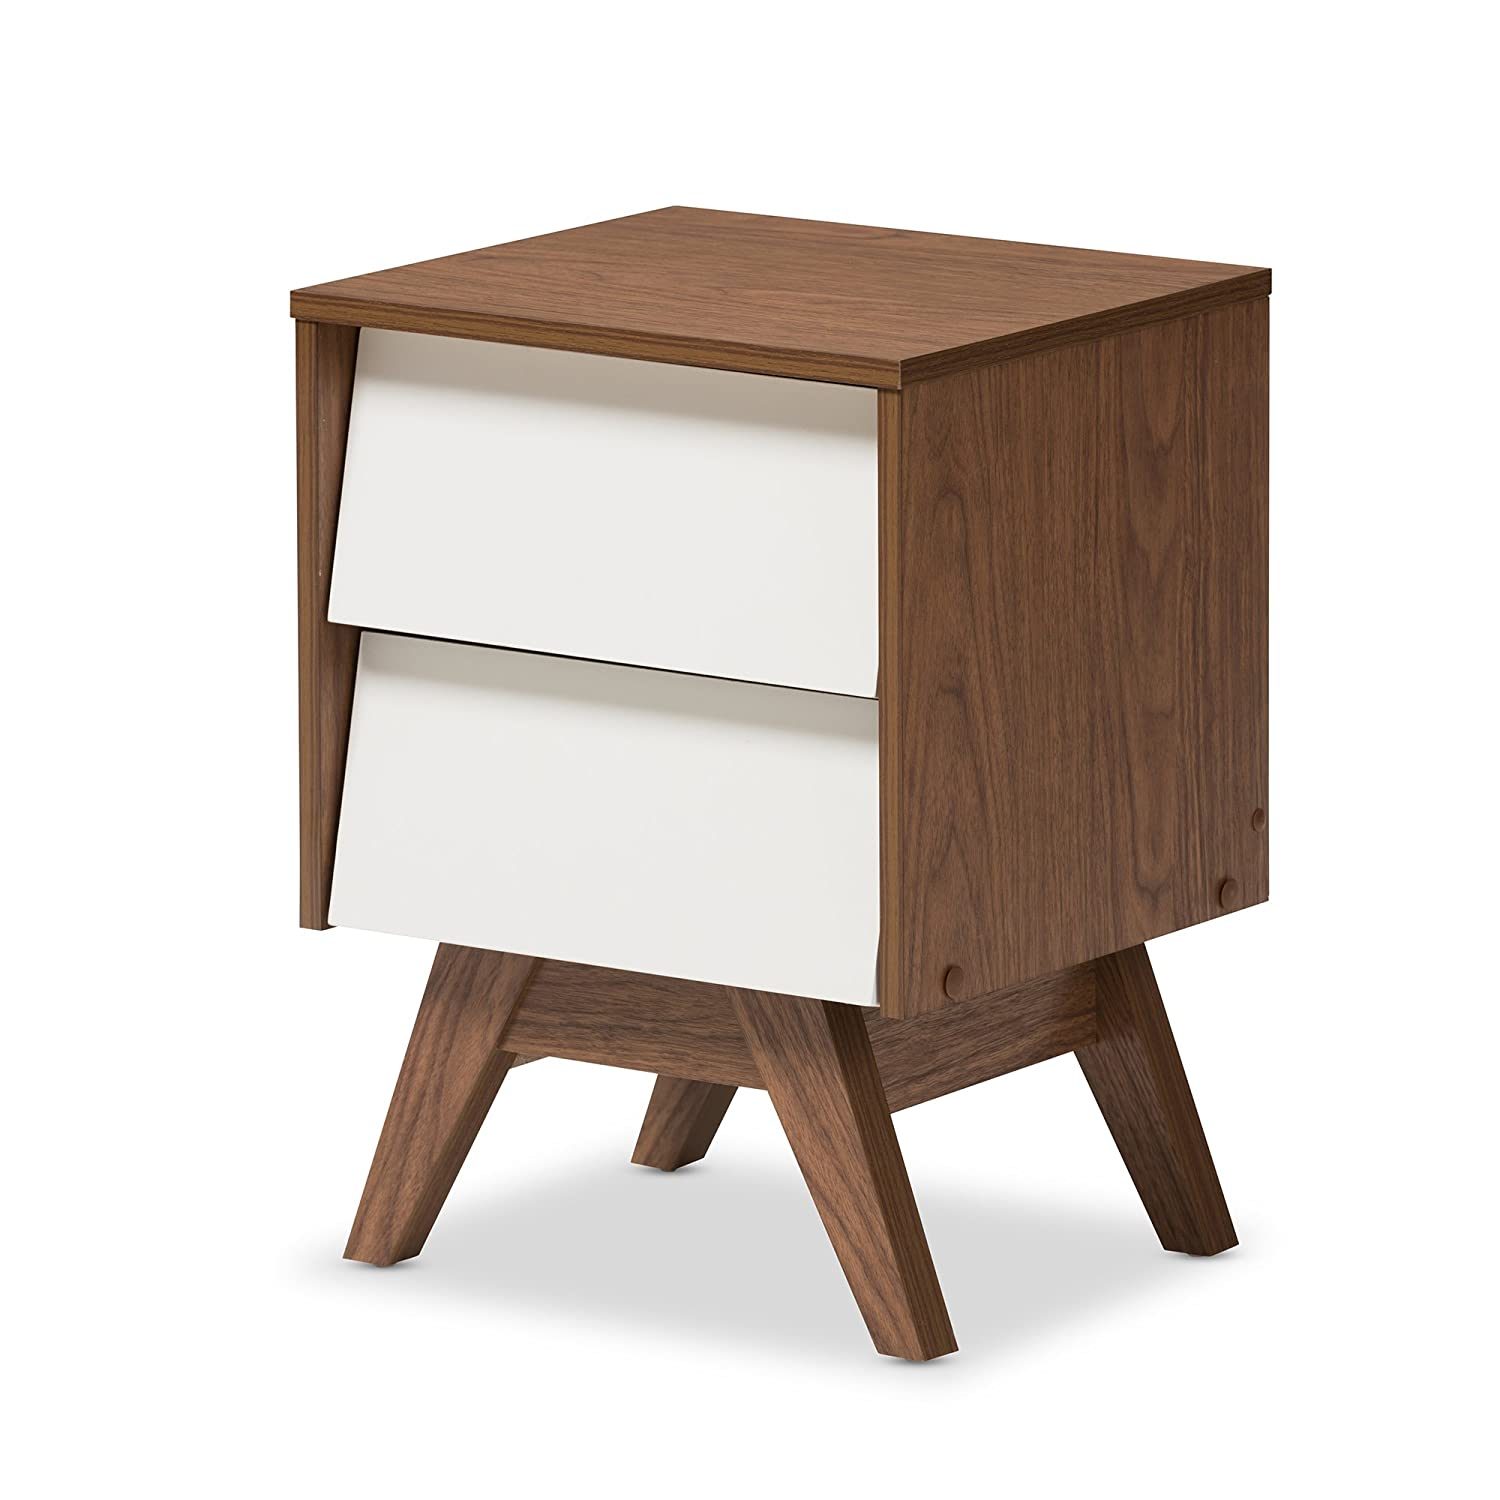 Baxton Studio Herve Mid-Century Modern Wood 2-Drawer Storage Nightstand, White/Walnut Brown Wholesale Interiors 424-7493-AMZ